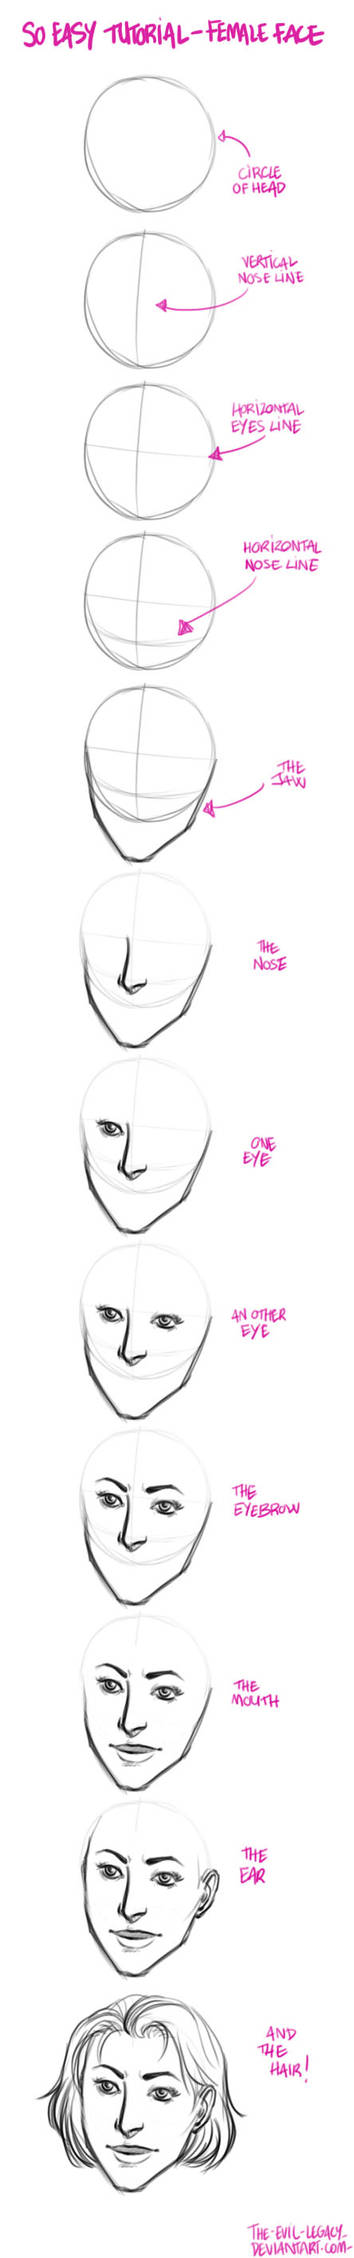 tuto - How to draw female